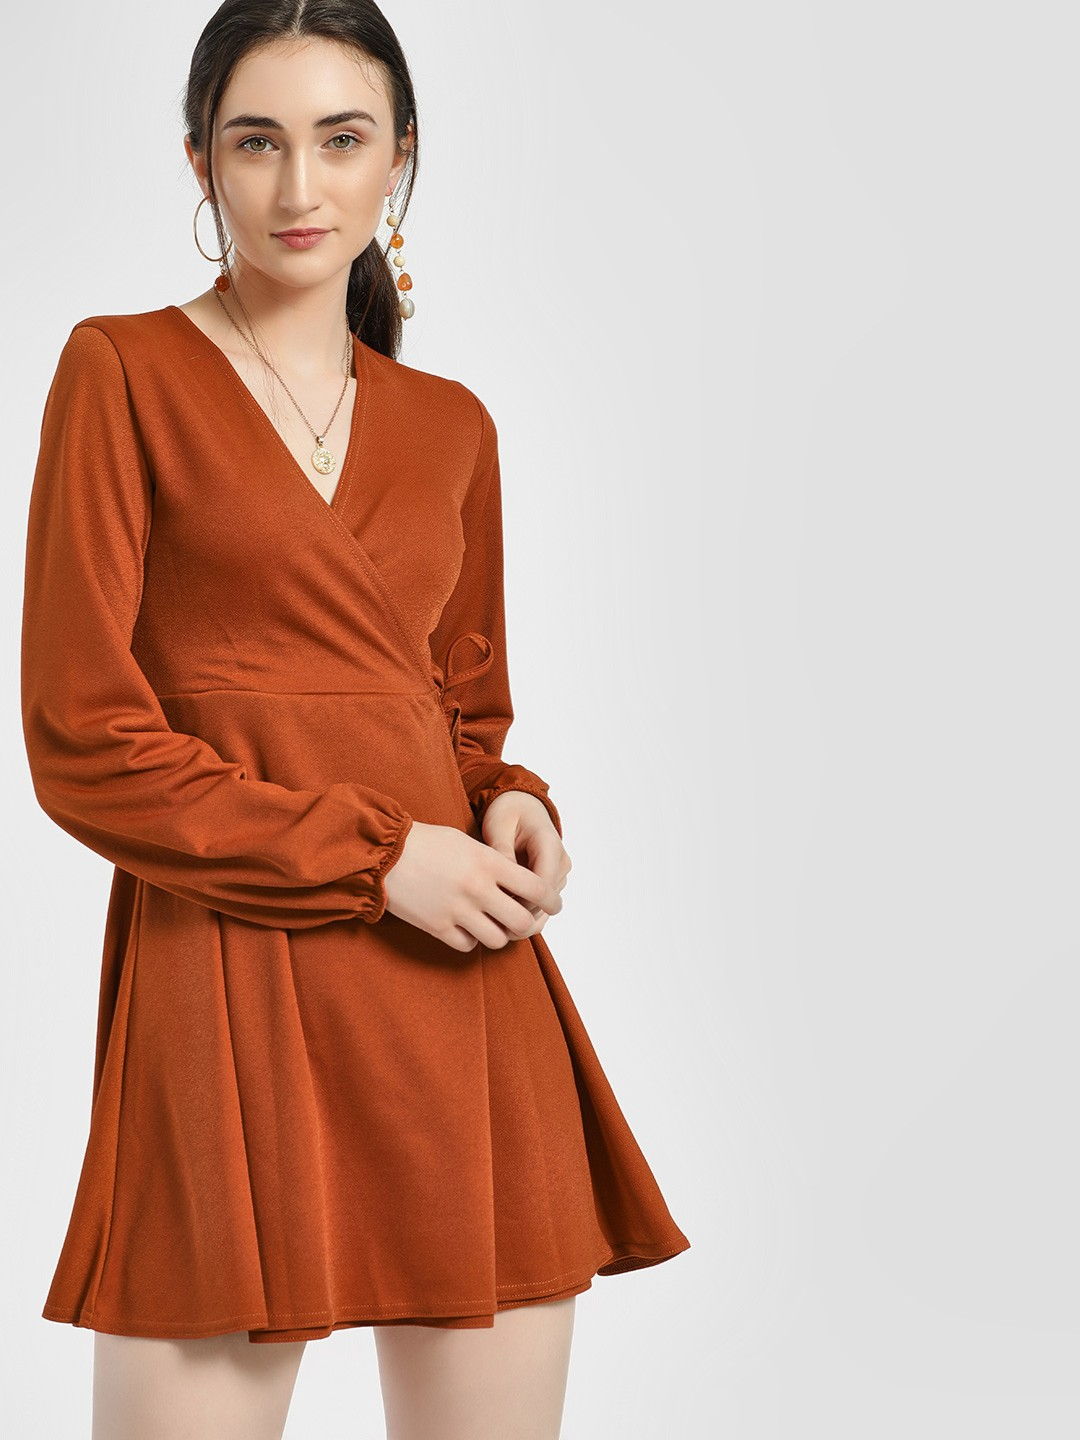 Lasula Rust Overlay V-Neck Skater Dress 1